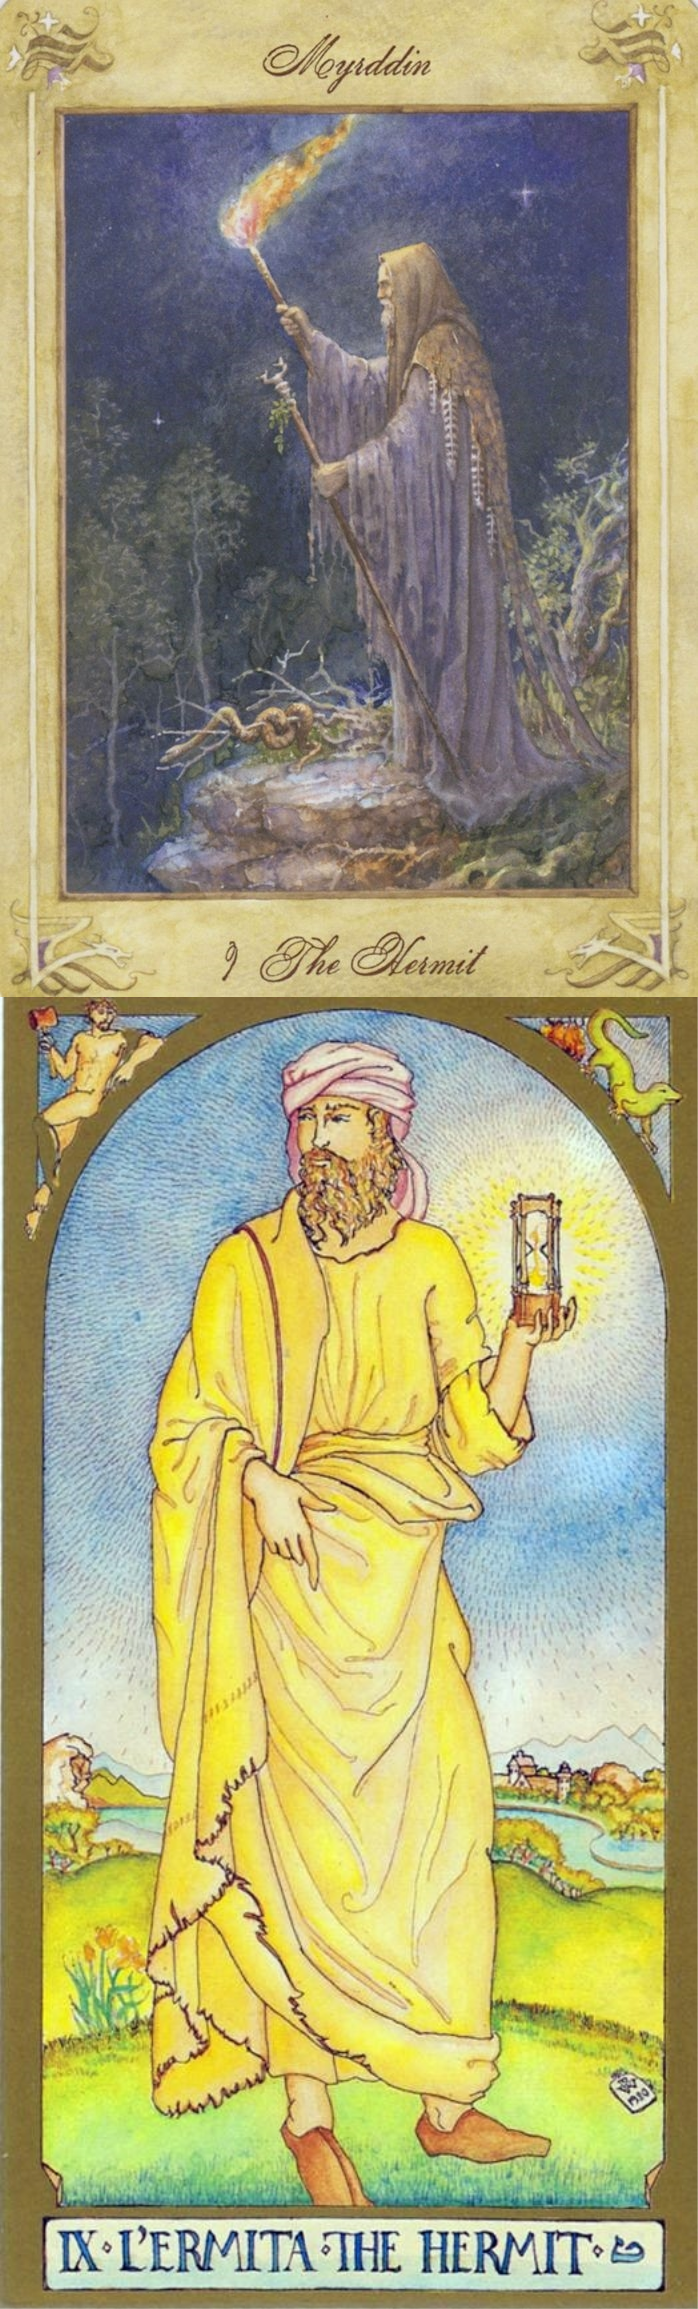 the hermit yes or no